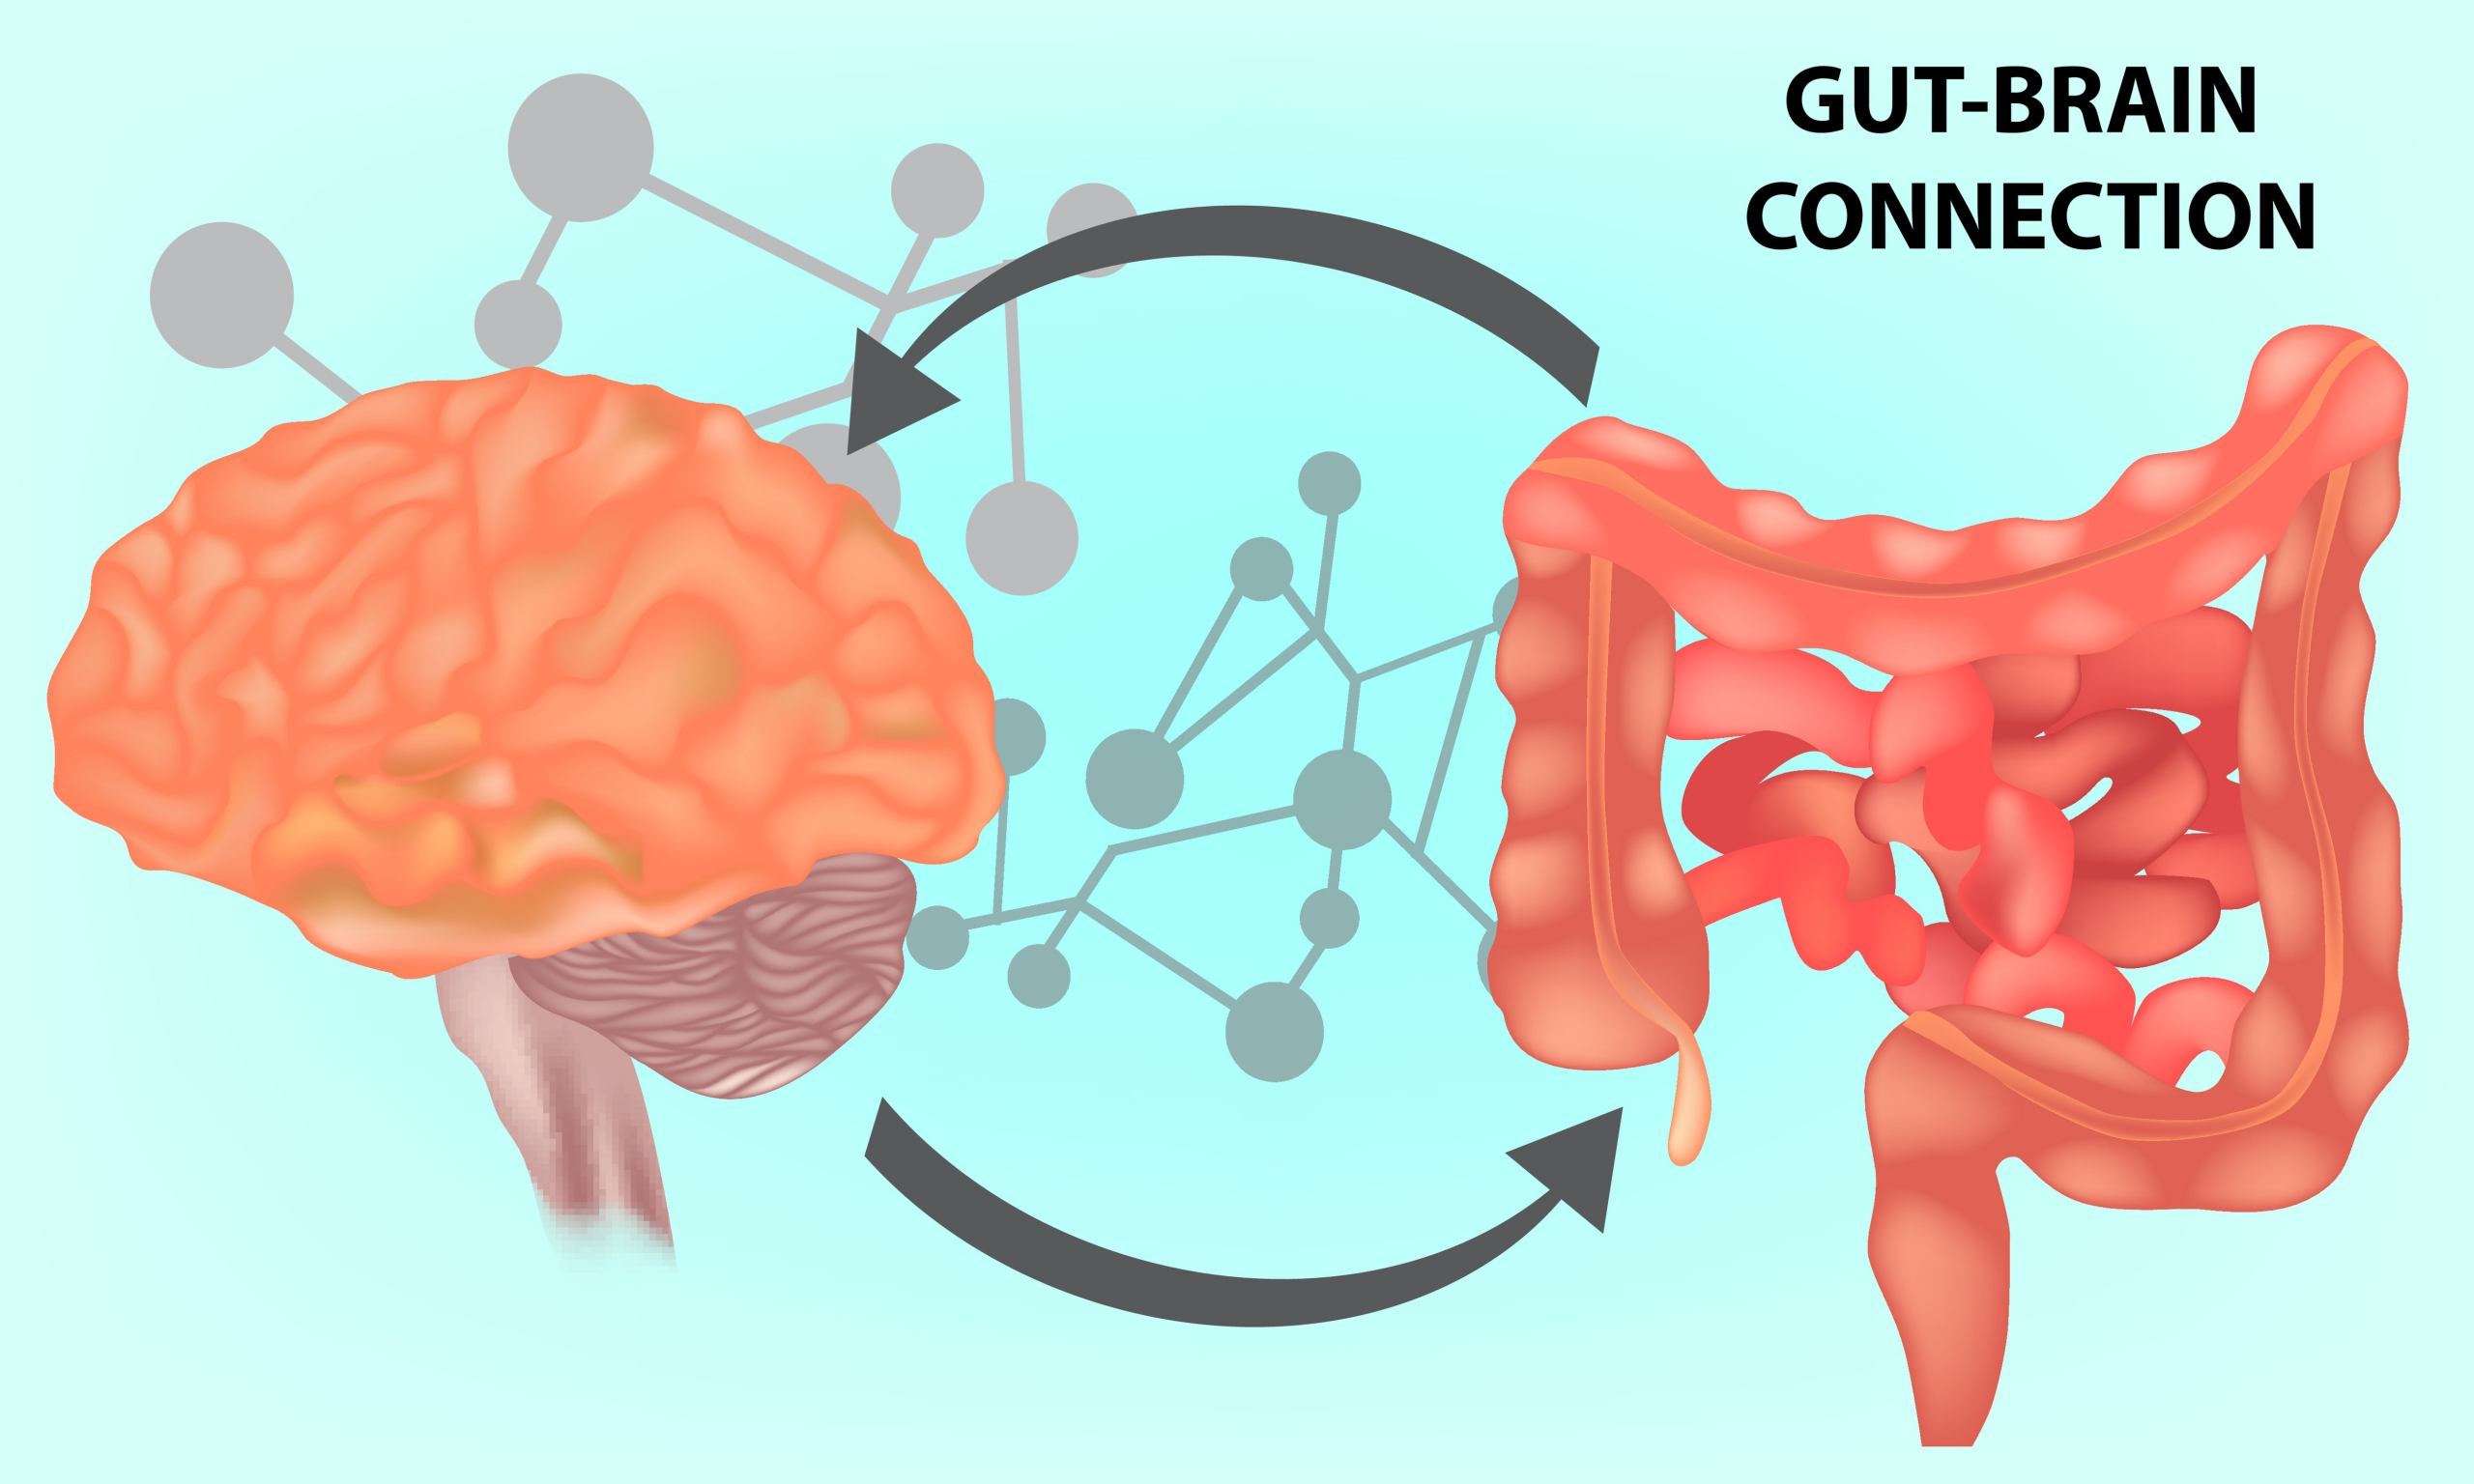 Disorders of the Gut-Brain Interaction